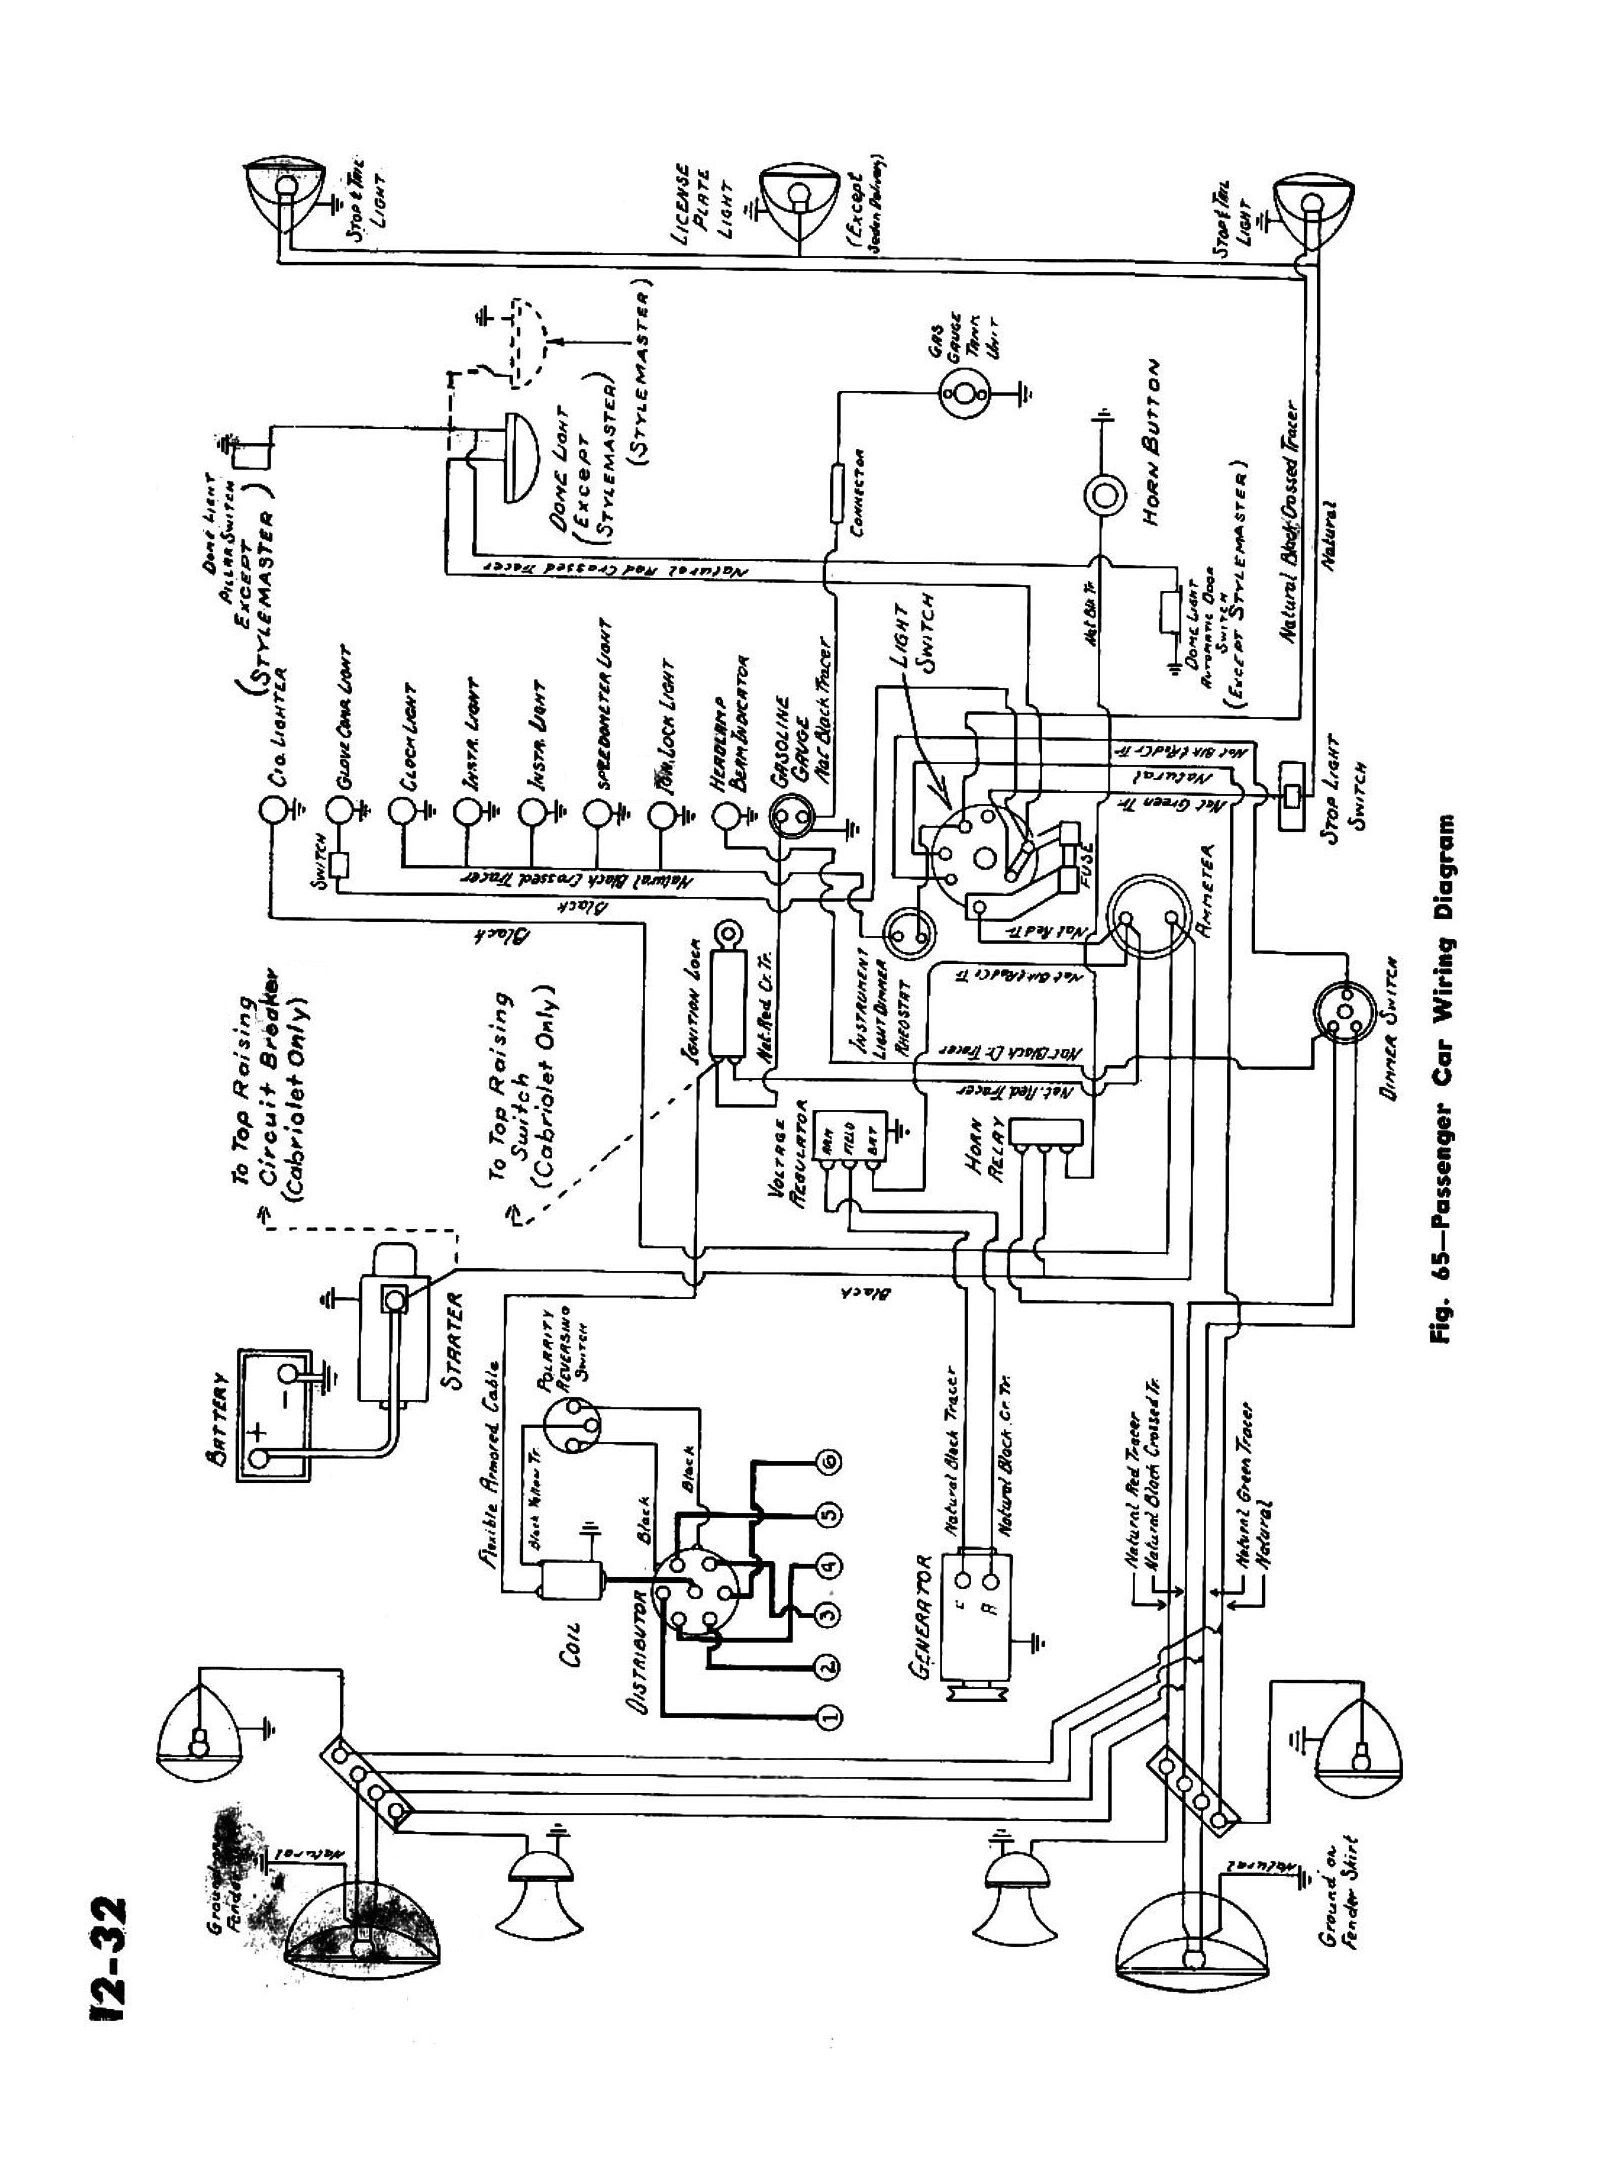 hight resolution of chevy wiring diagrams wiring a 400 amp service rover 45 air con wiring diagram